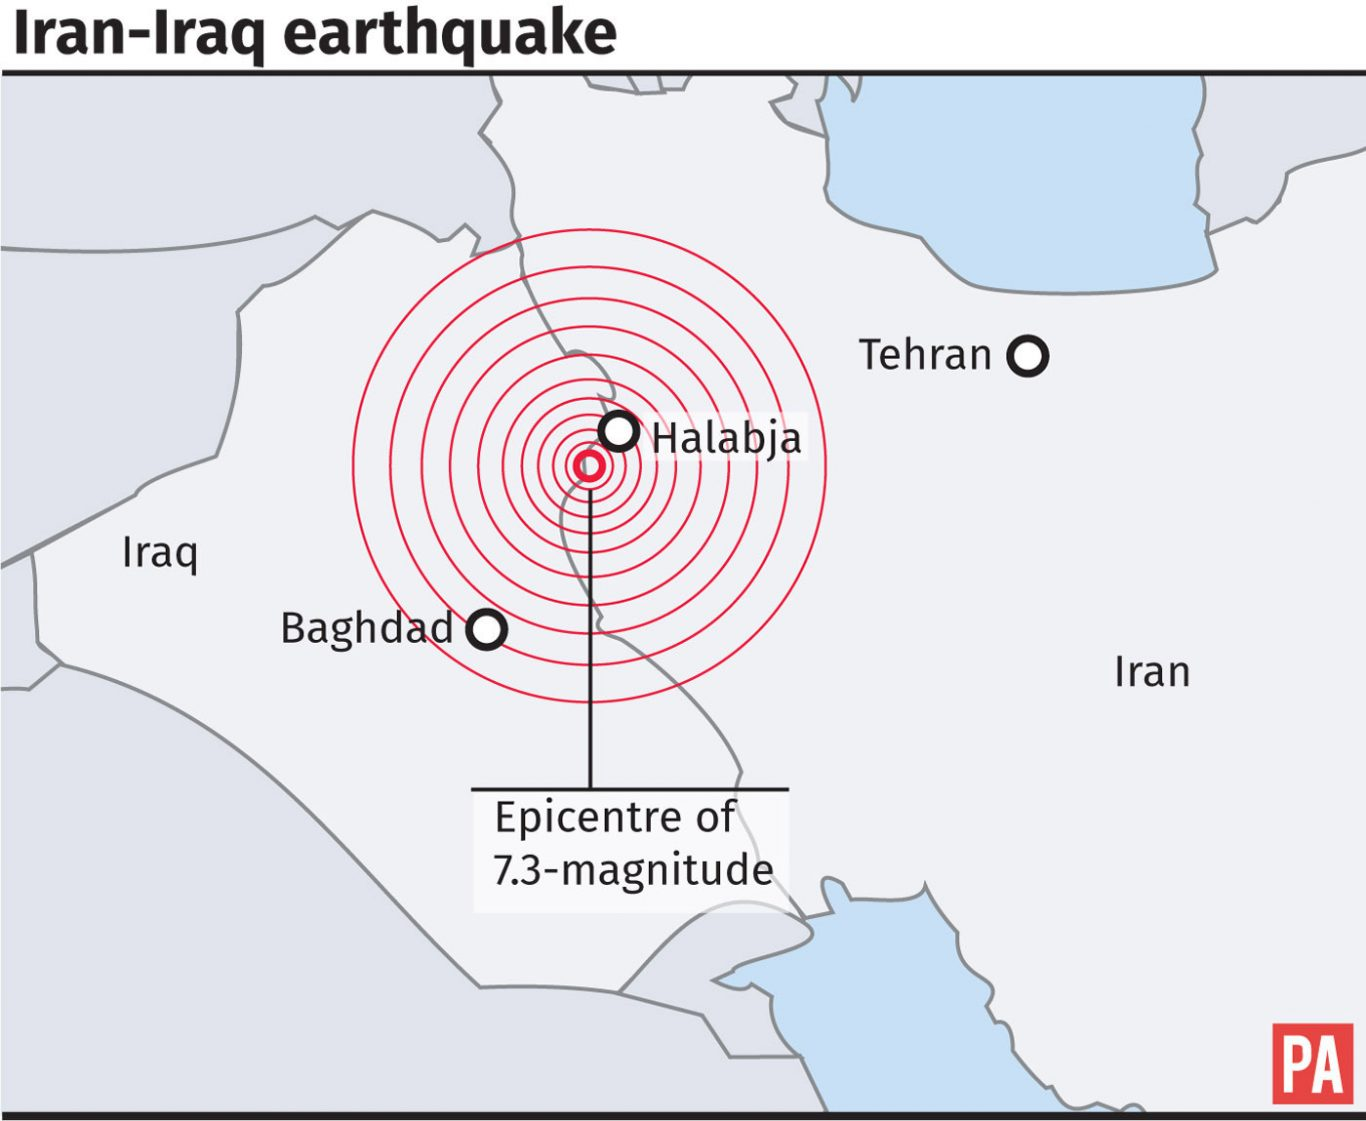 Graphic locates epicentre of 7.3-magnitude earthquake on the border of Iran and Iraq